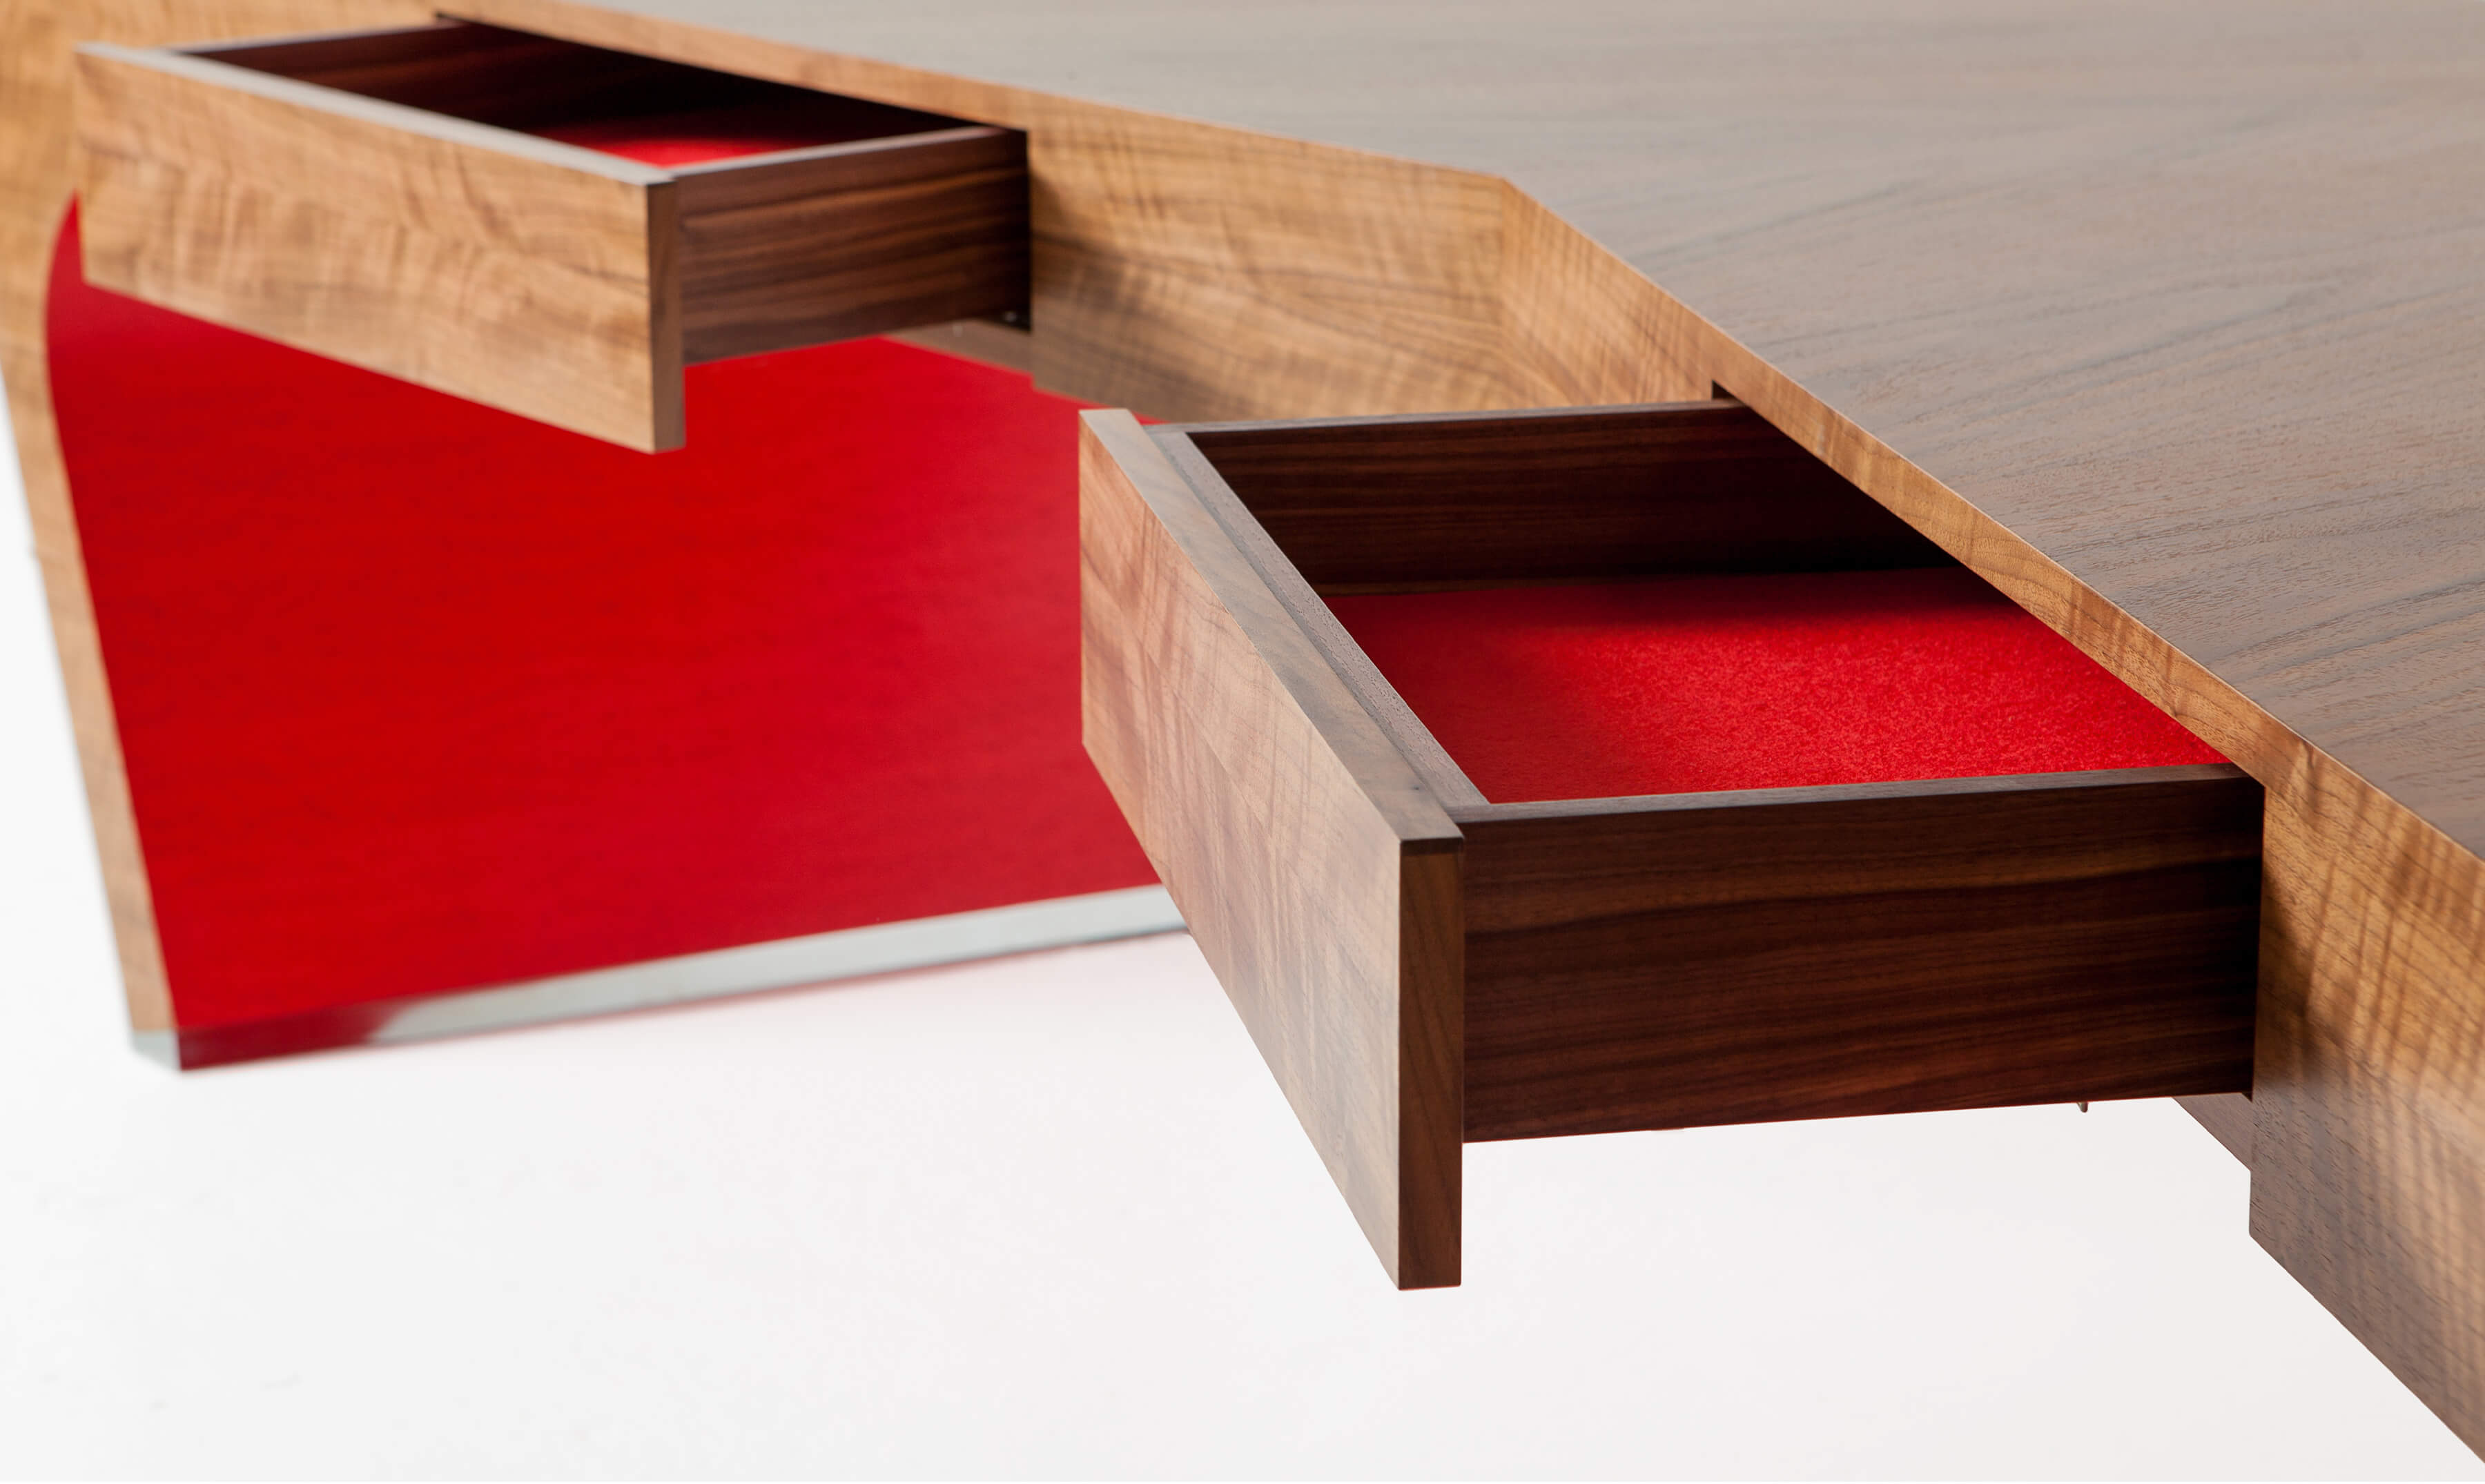 Red detail on empowering hand-crafted desk in v-shaped design